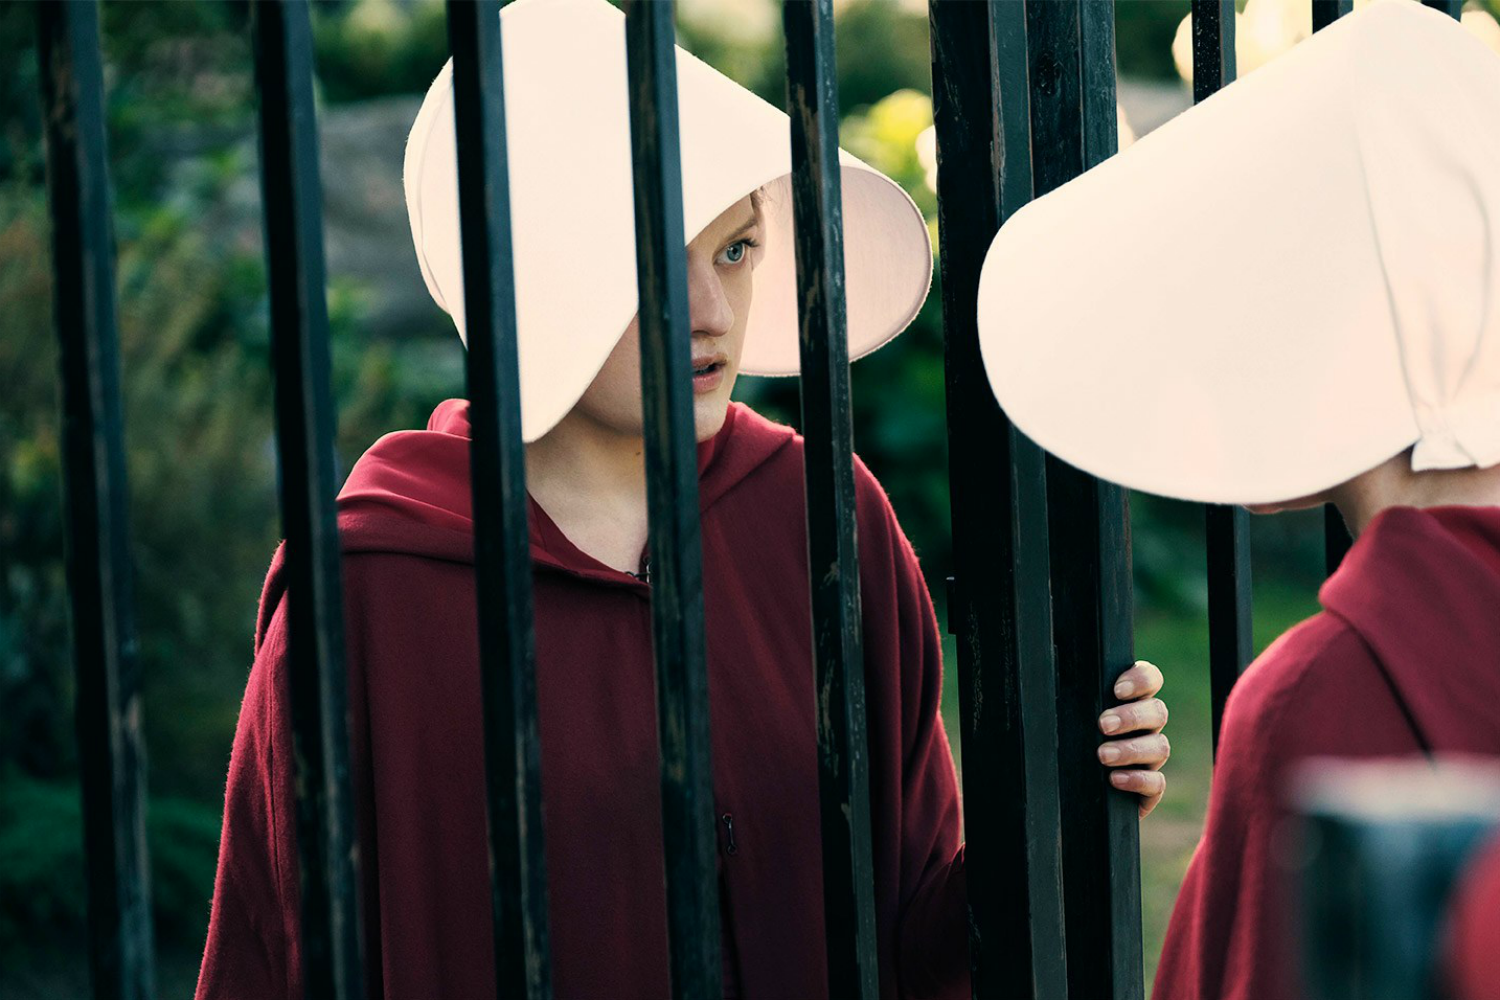 'The Handmaid's Tale' scores Season 2 renewal a week after premiering